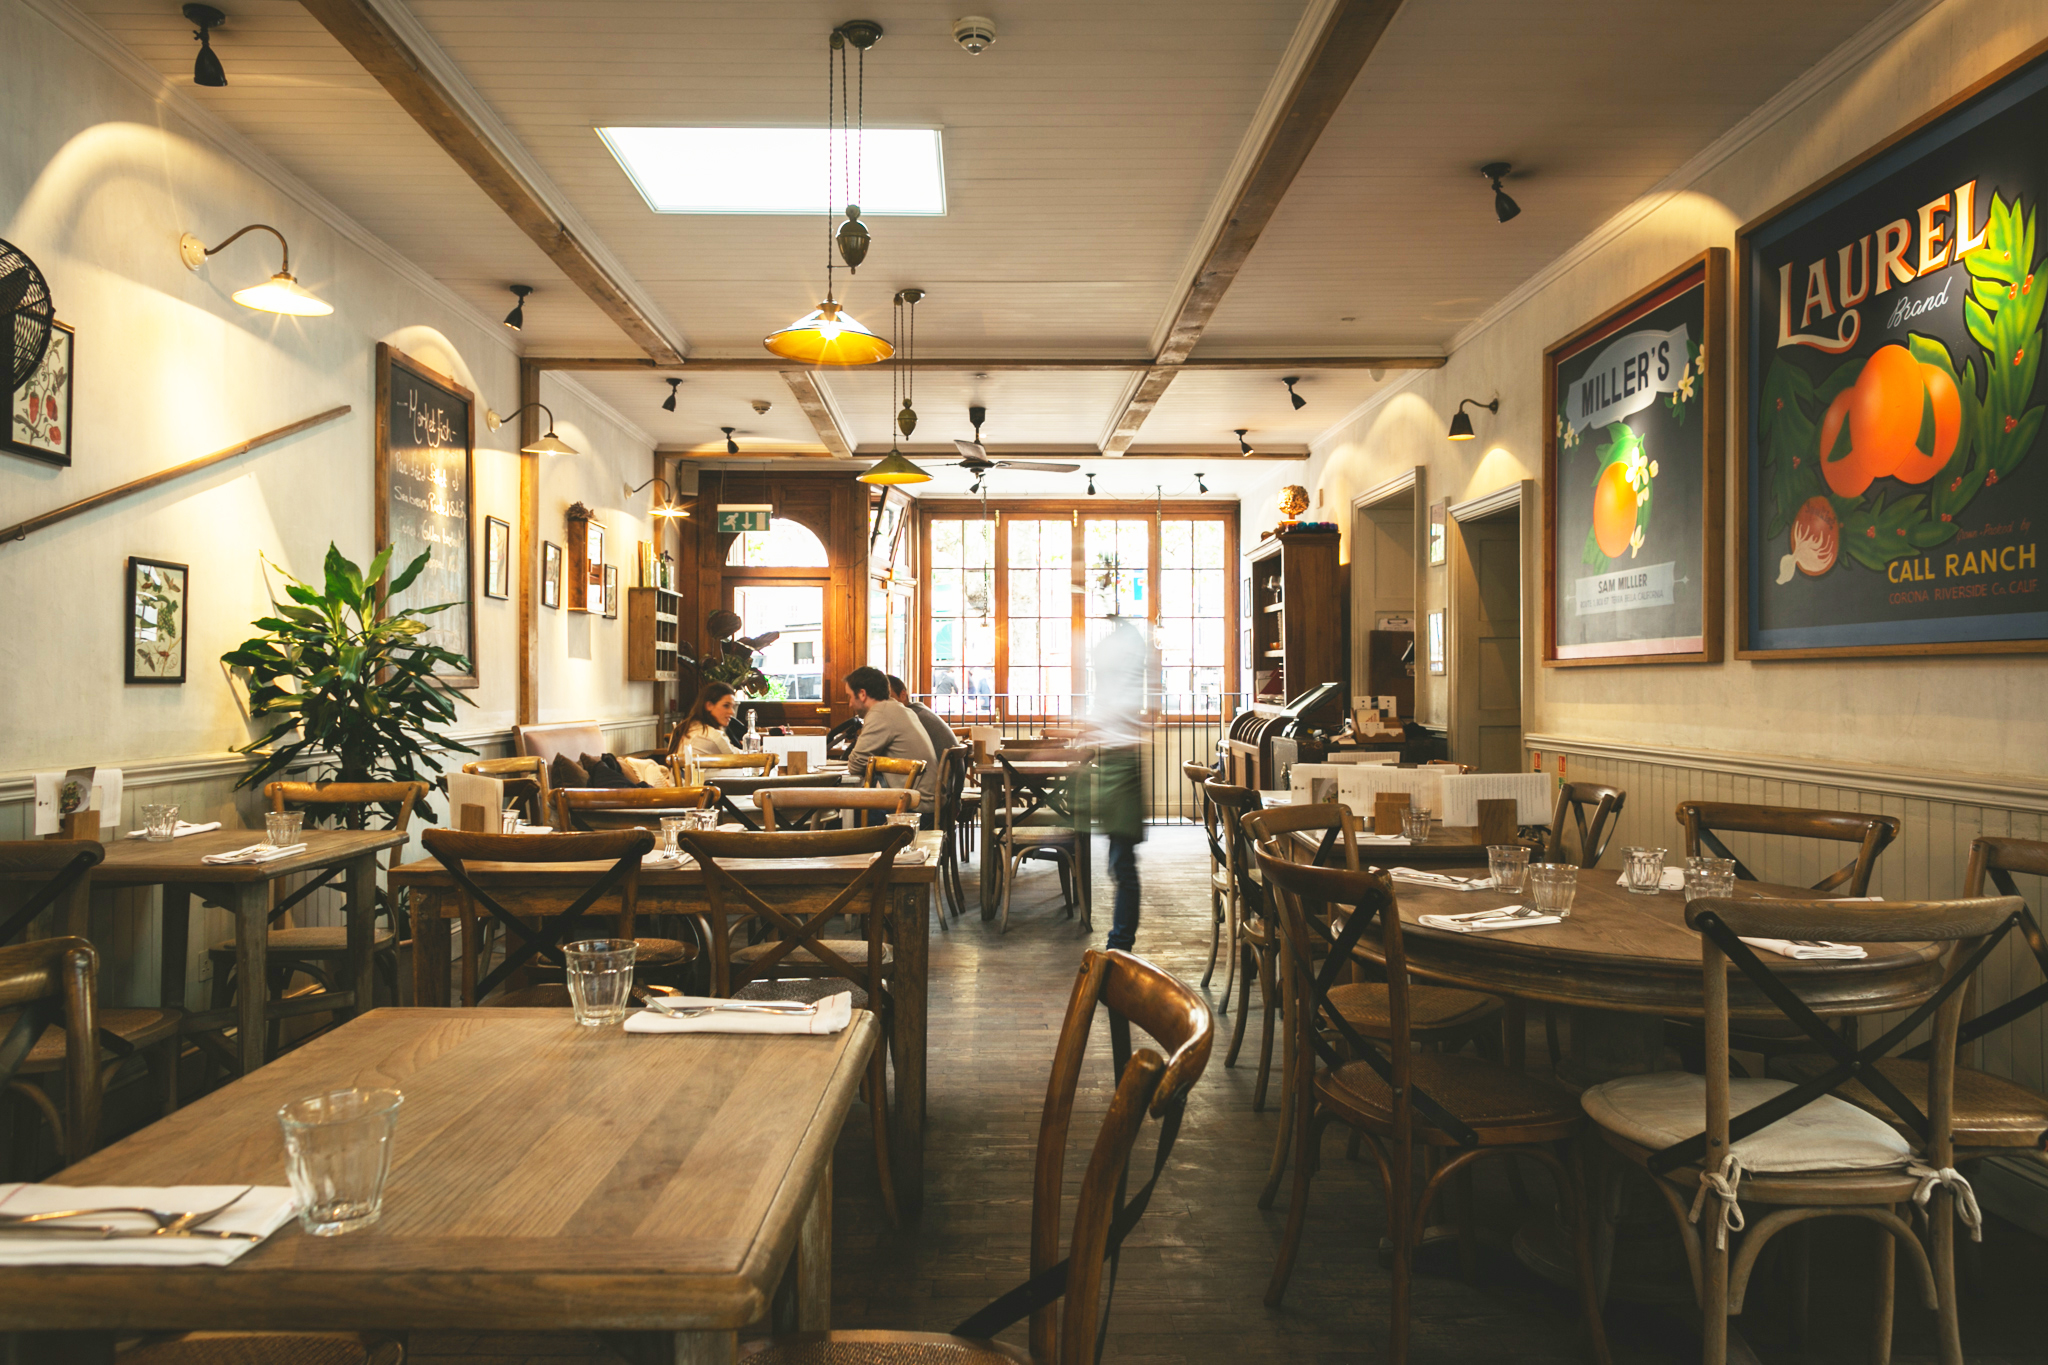 The Top 10 Restaurants In Pimlico, London